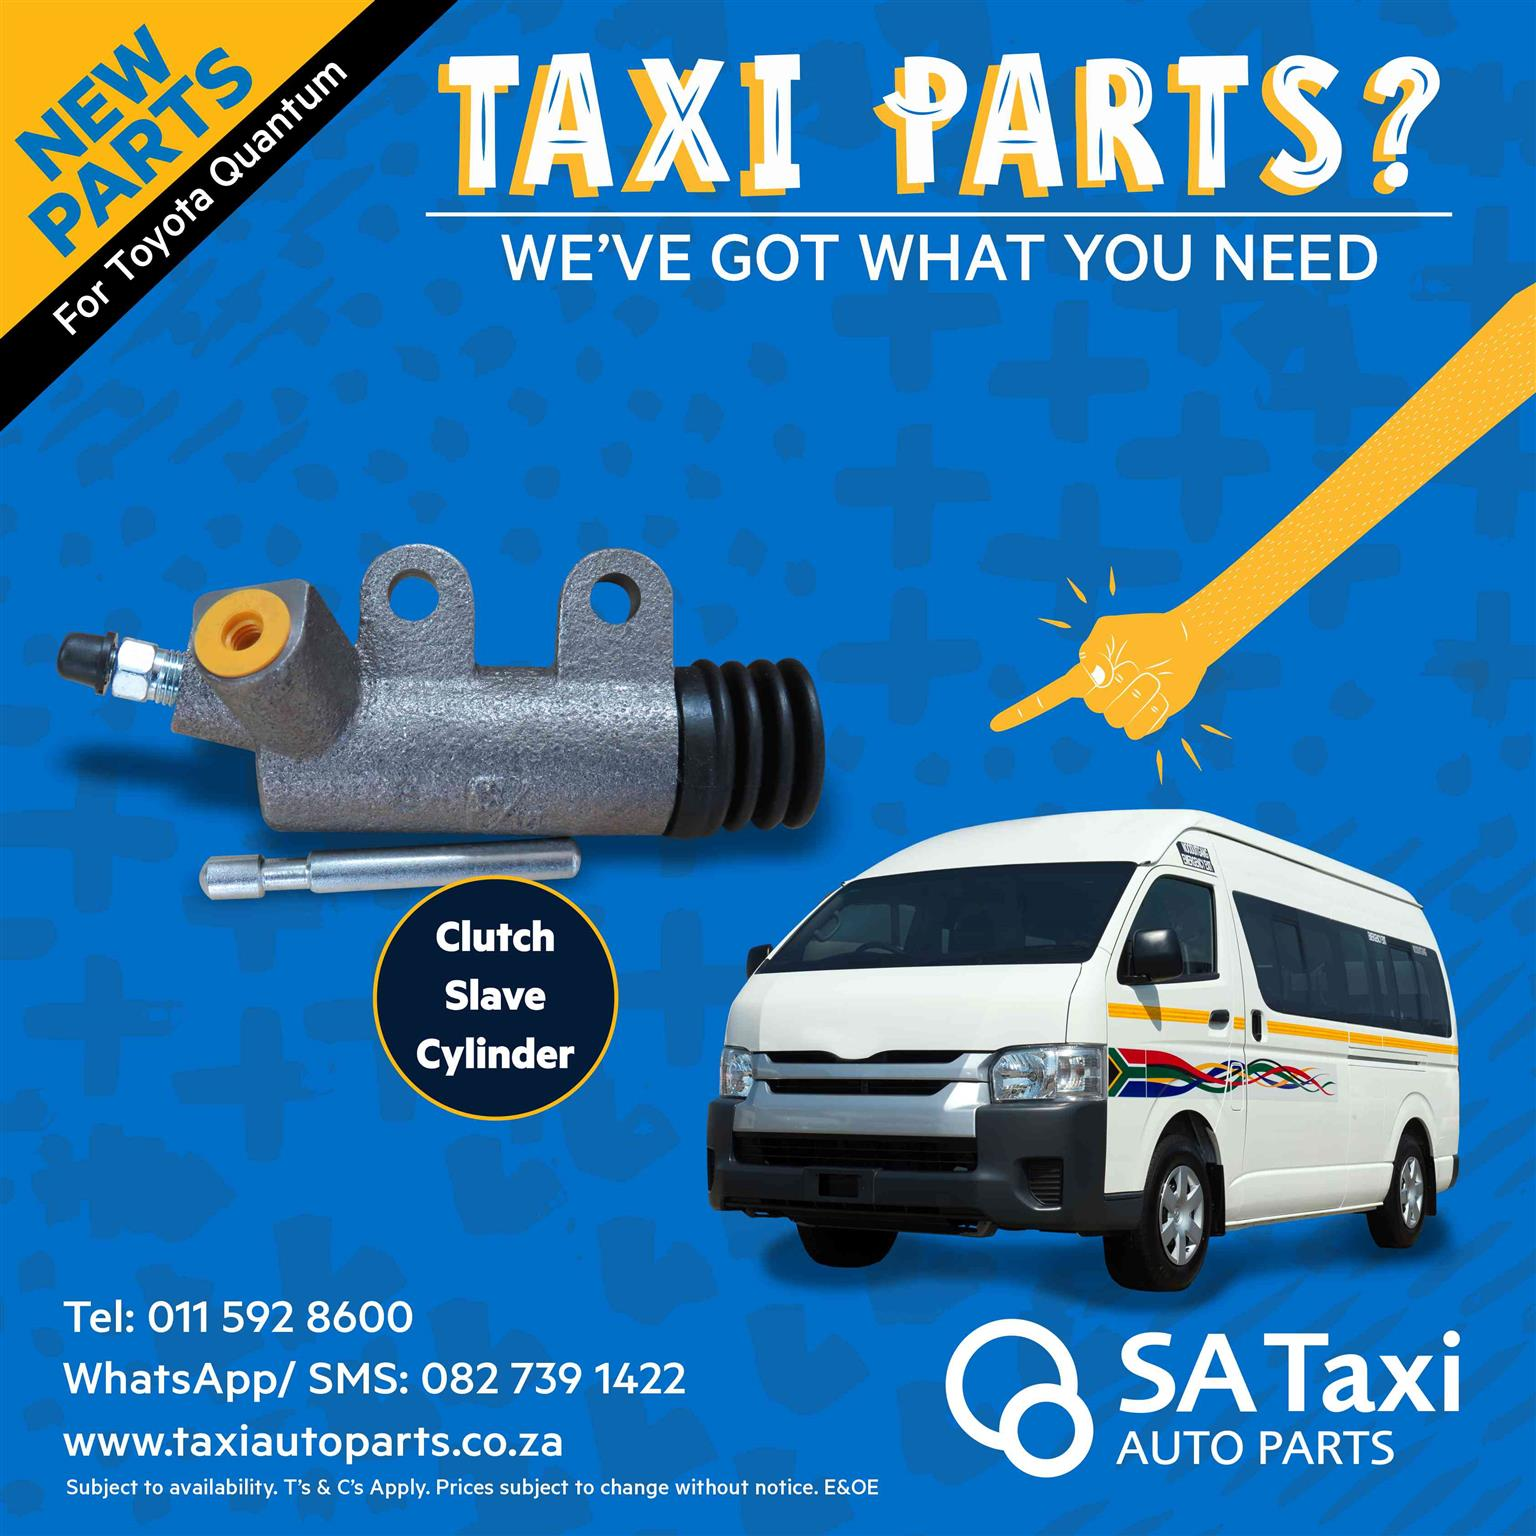 New Clutch Slave Cylinder suitable for Toyota Quantum - SA Taxi Auto Parts quality spares